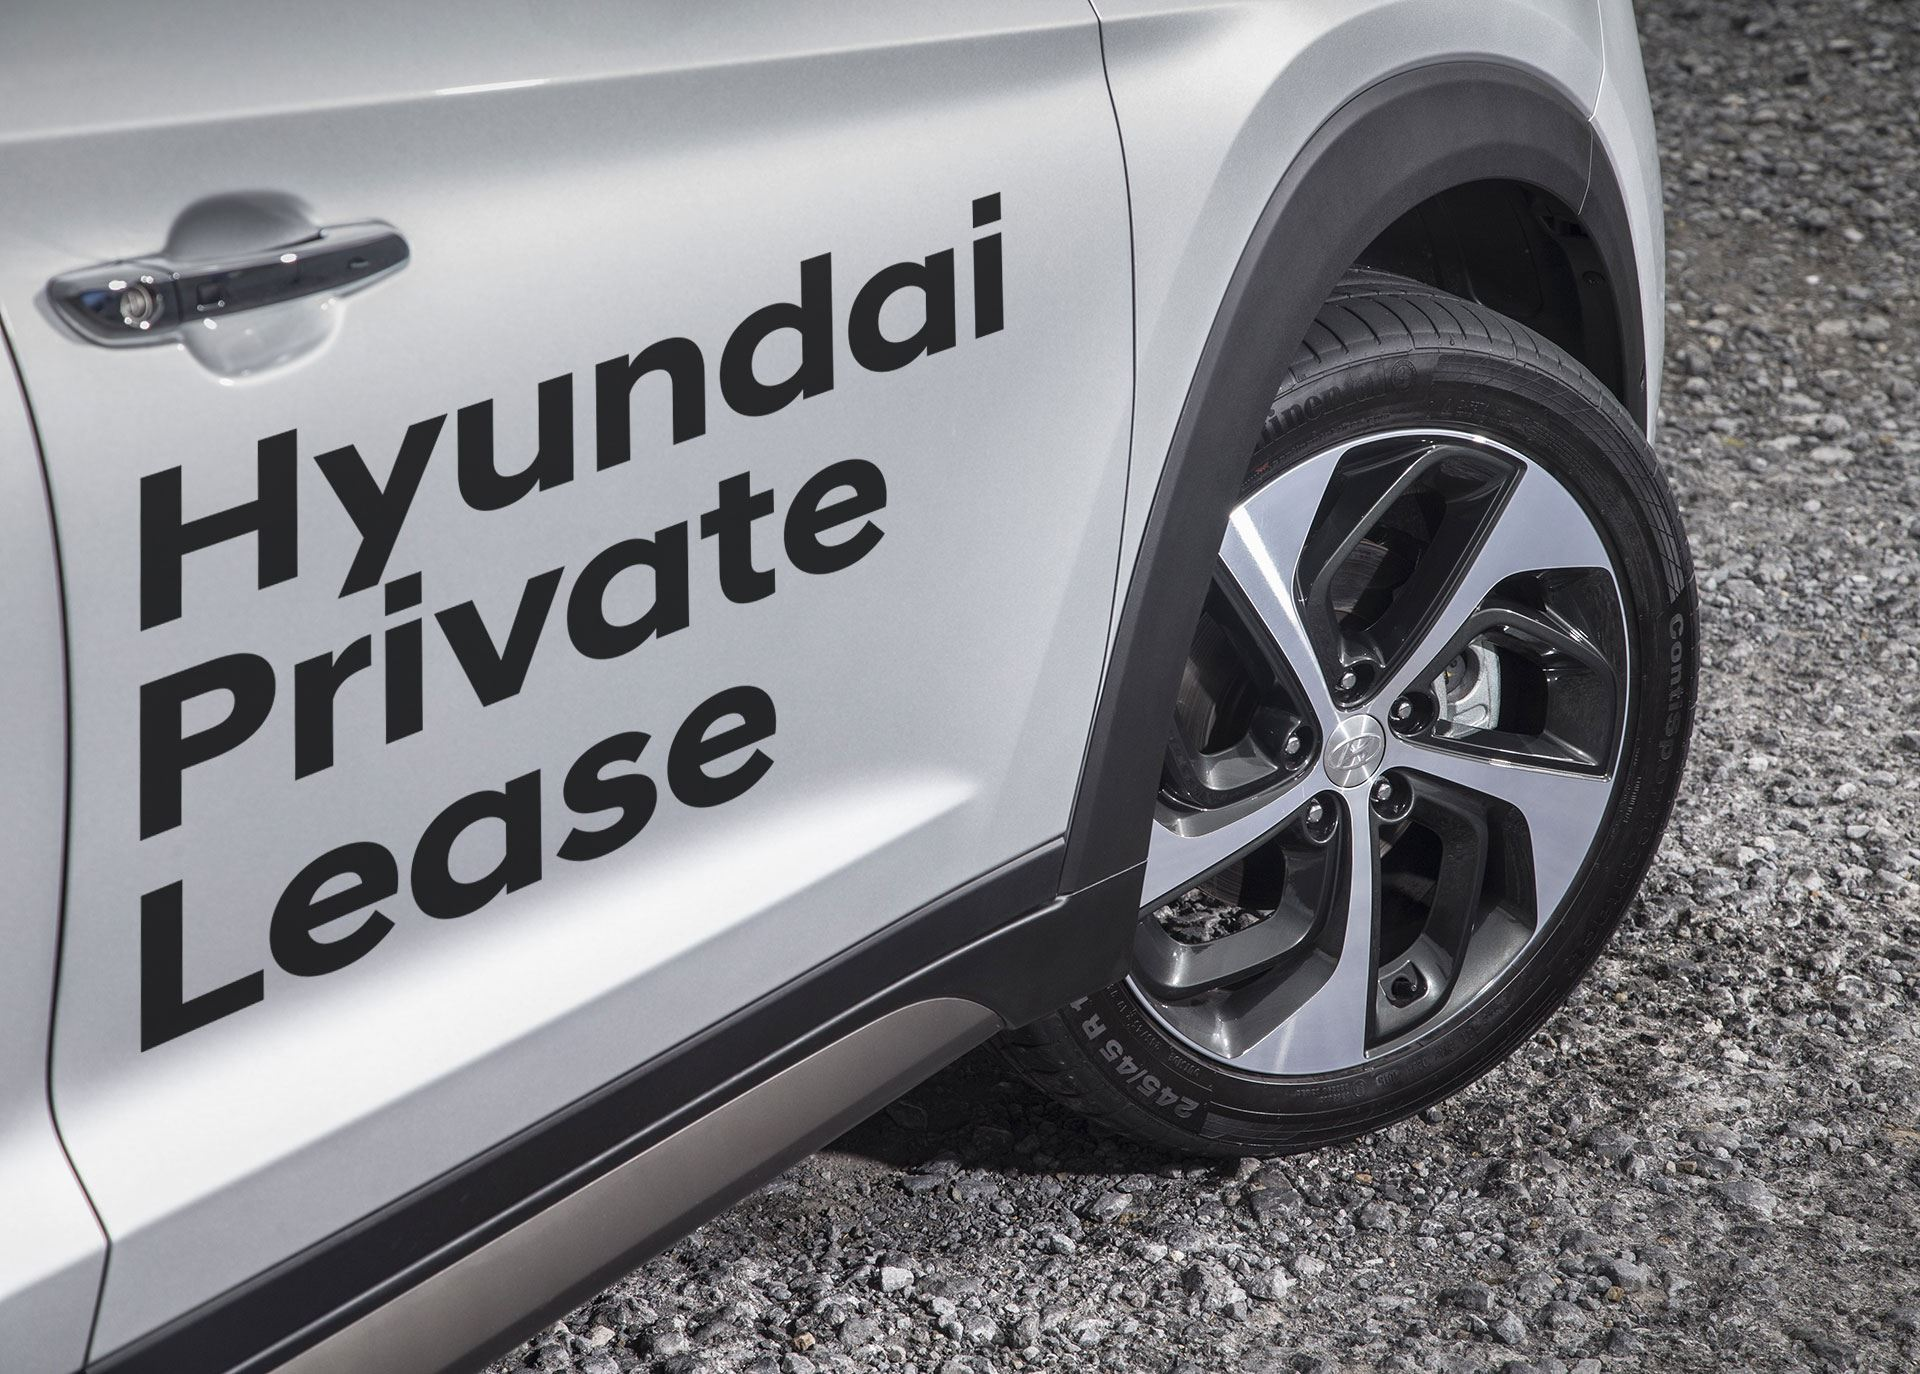 Private Lease Hyundai Privé Een Nieuwe Hyundai Leasen Met Hyundai Private Lease